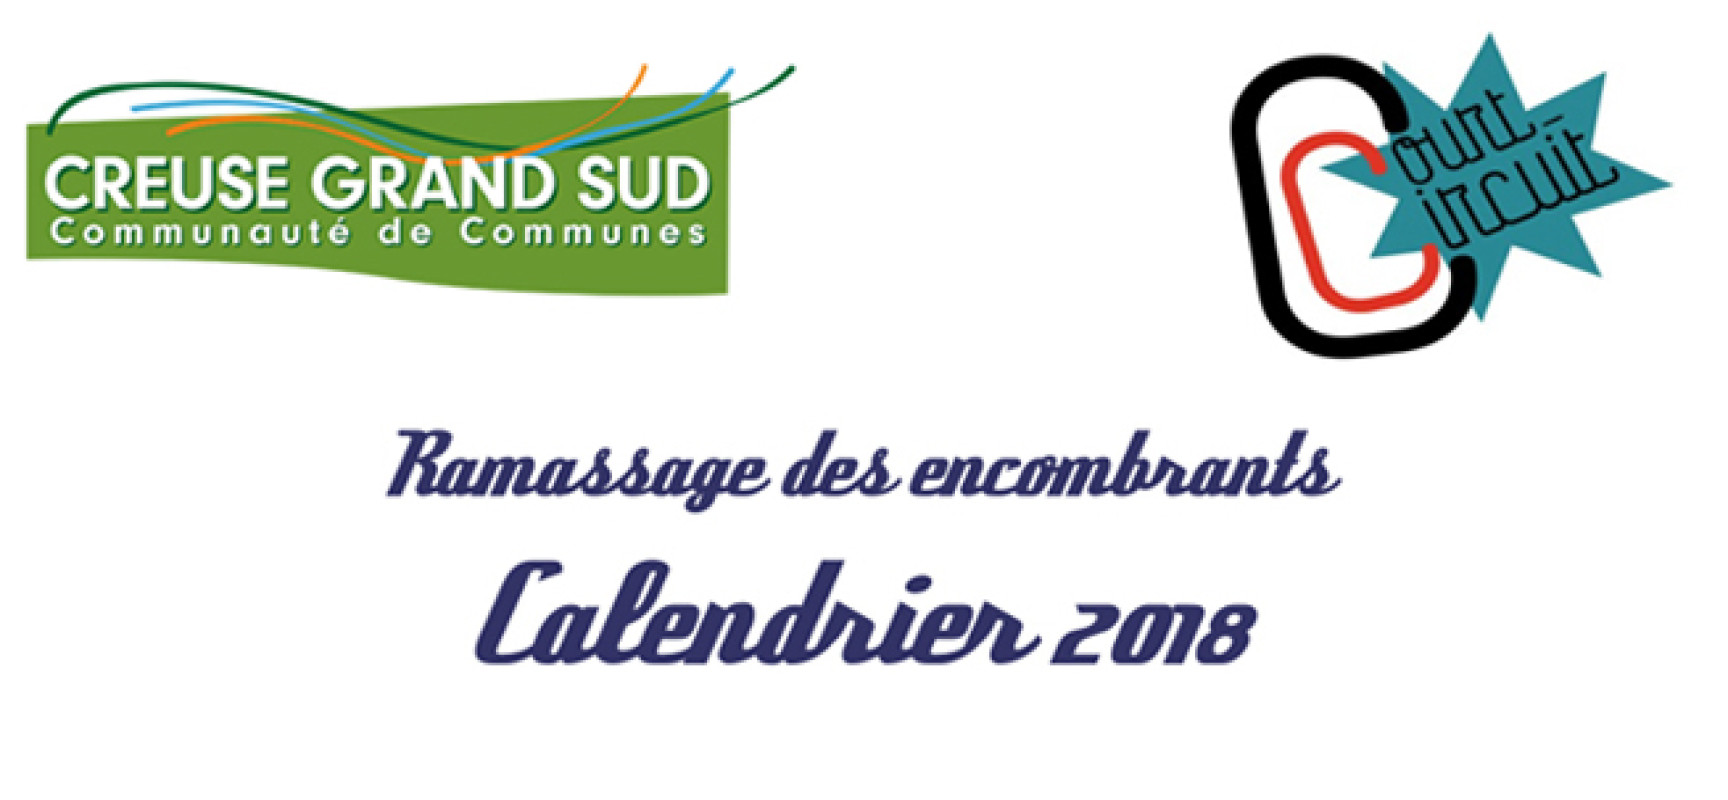 Ramassage des encombrants – Calendrier 2018